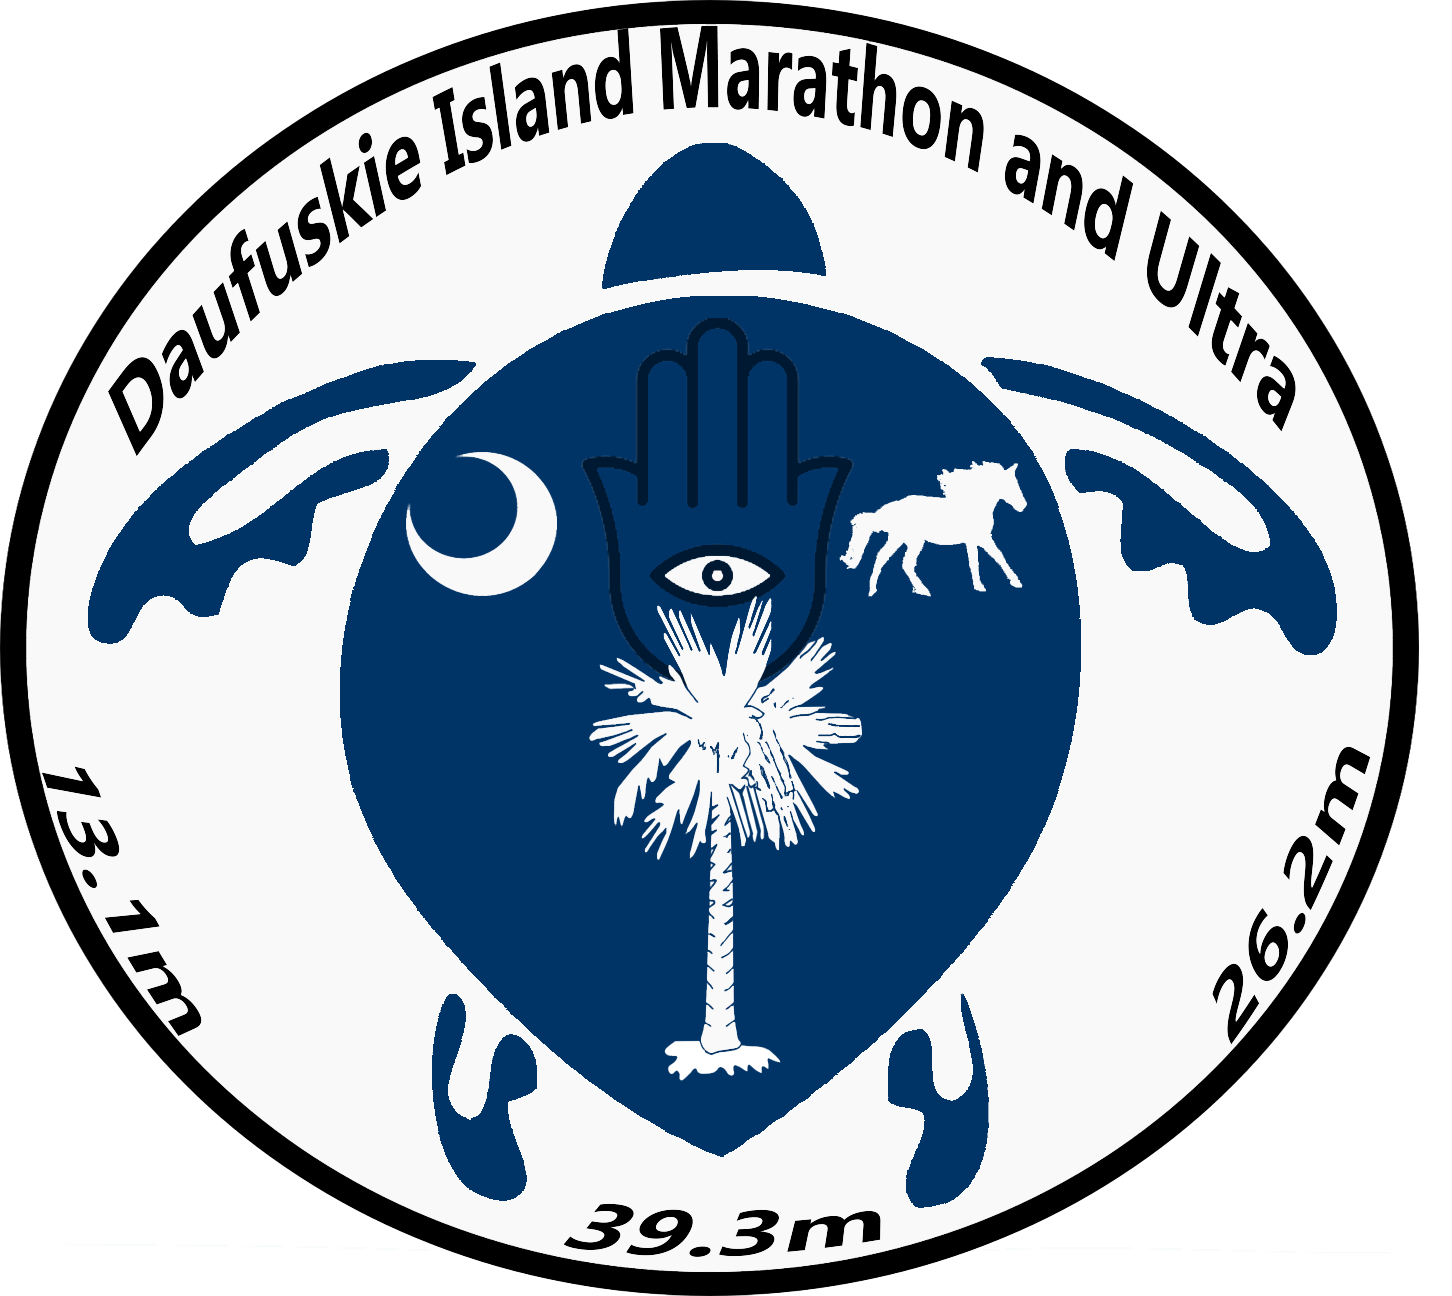 Daufuskie Island Marathon and Ultra Photo Gallery